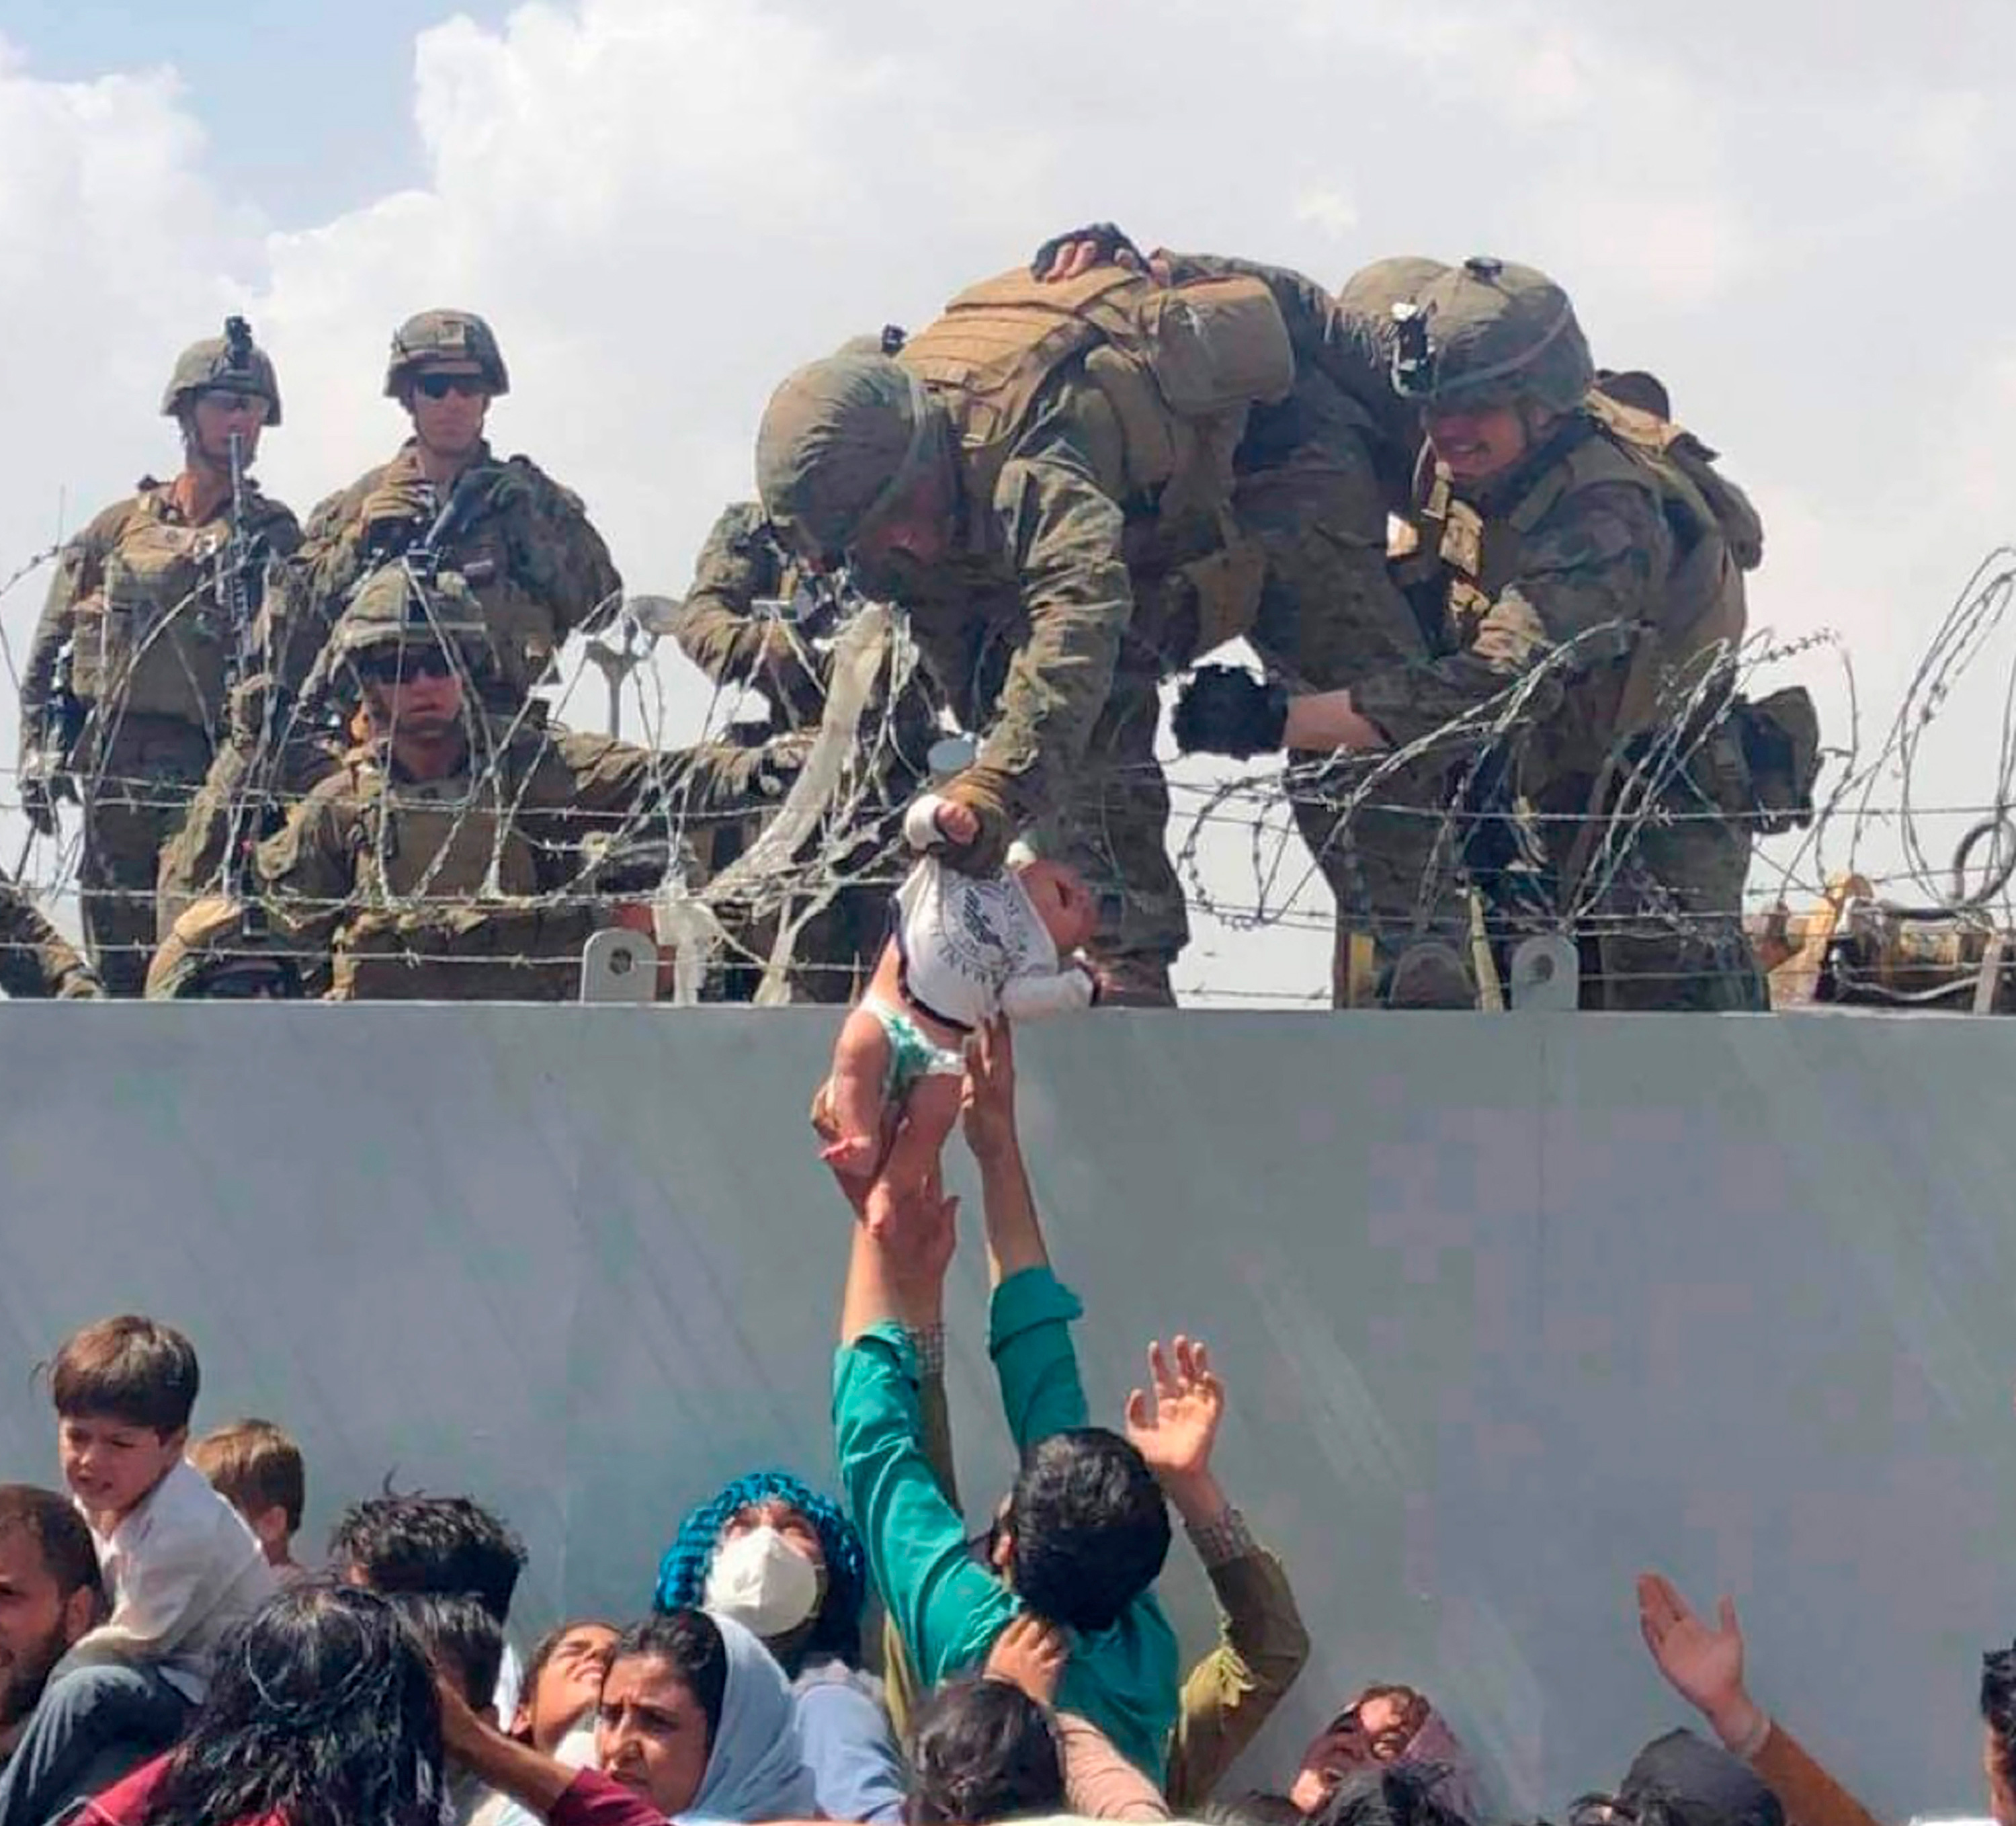 A baby being lifted across a wall at Kabul Airport in Afghanistan by US soldiers, during chaotic scenes last week.